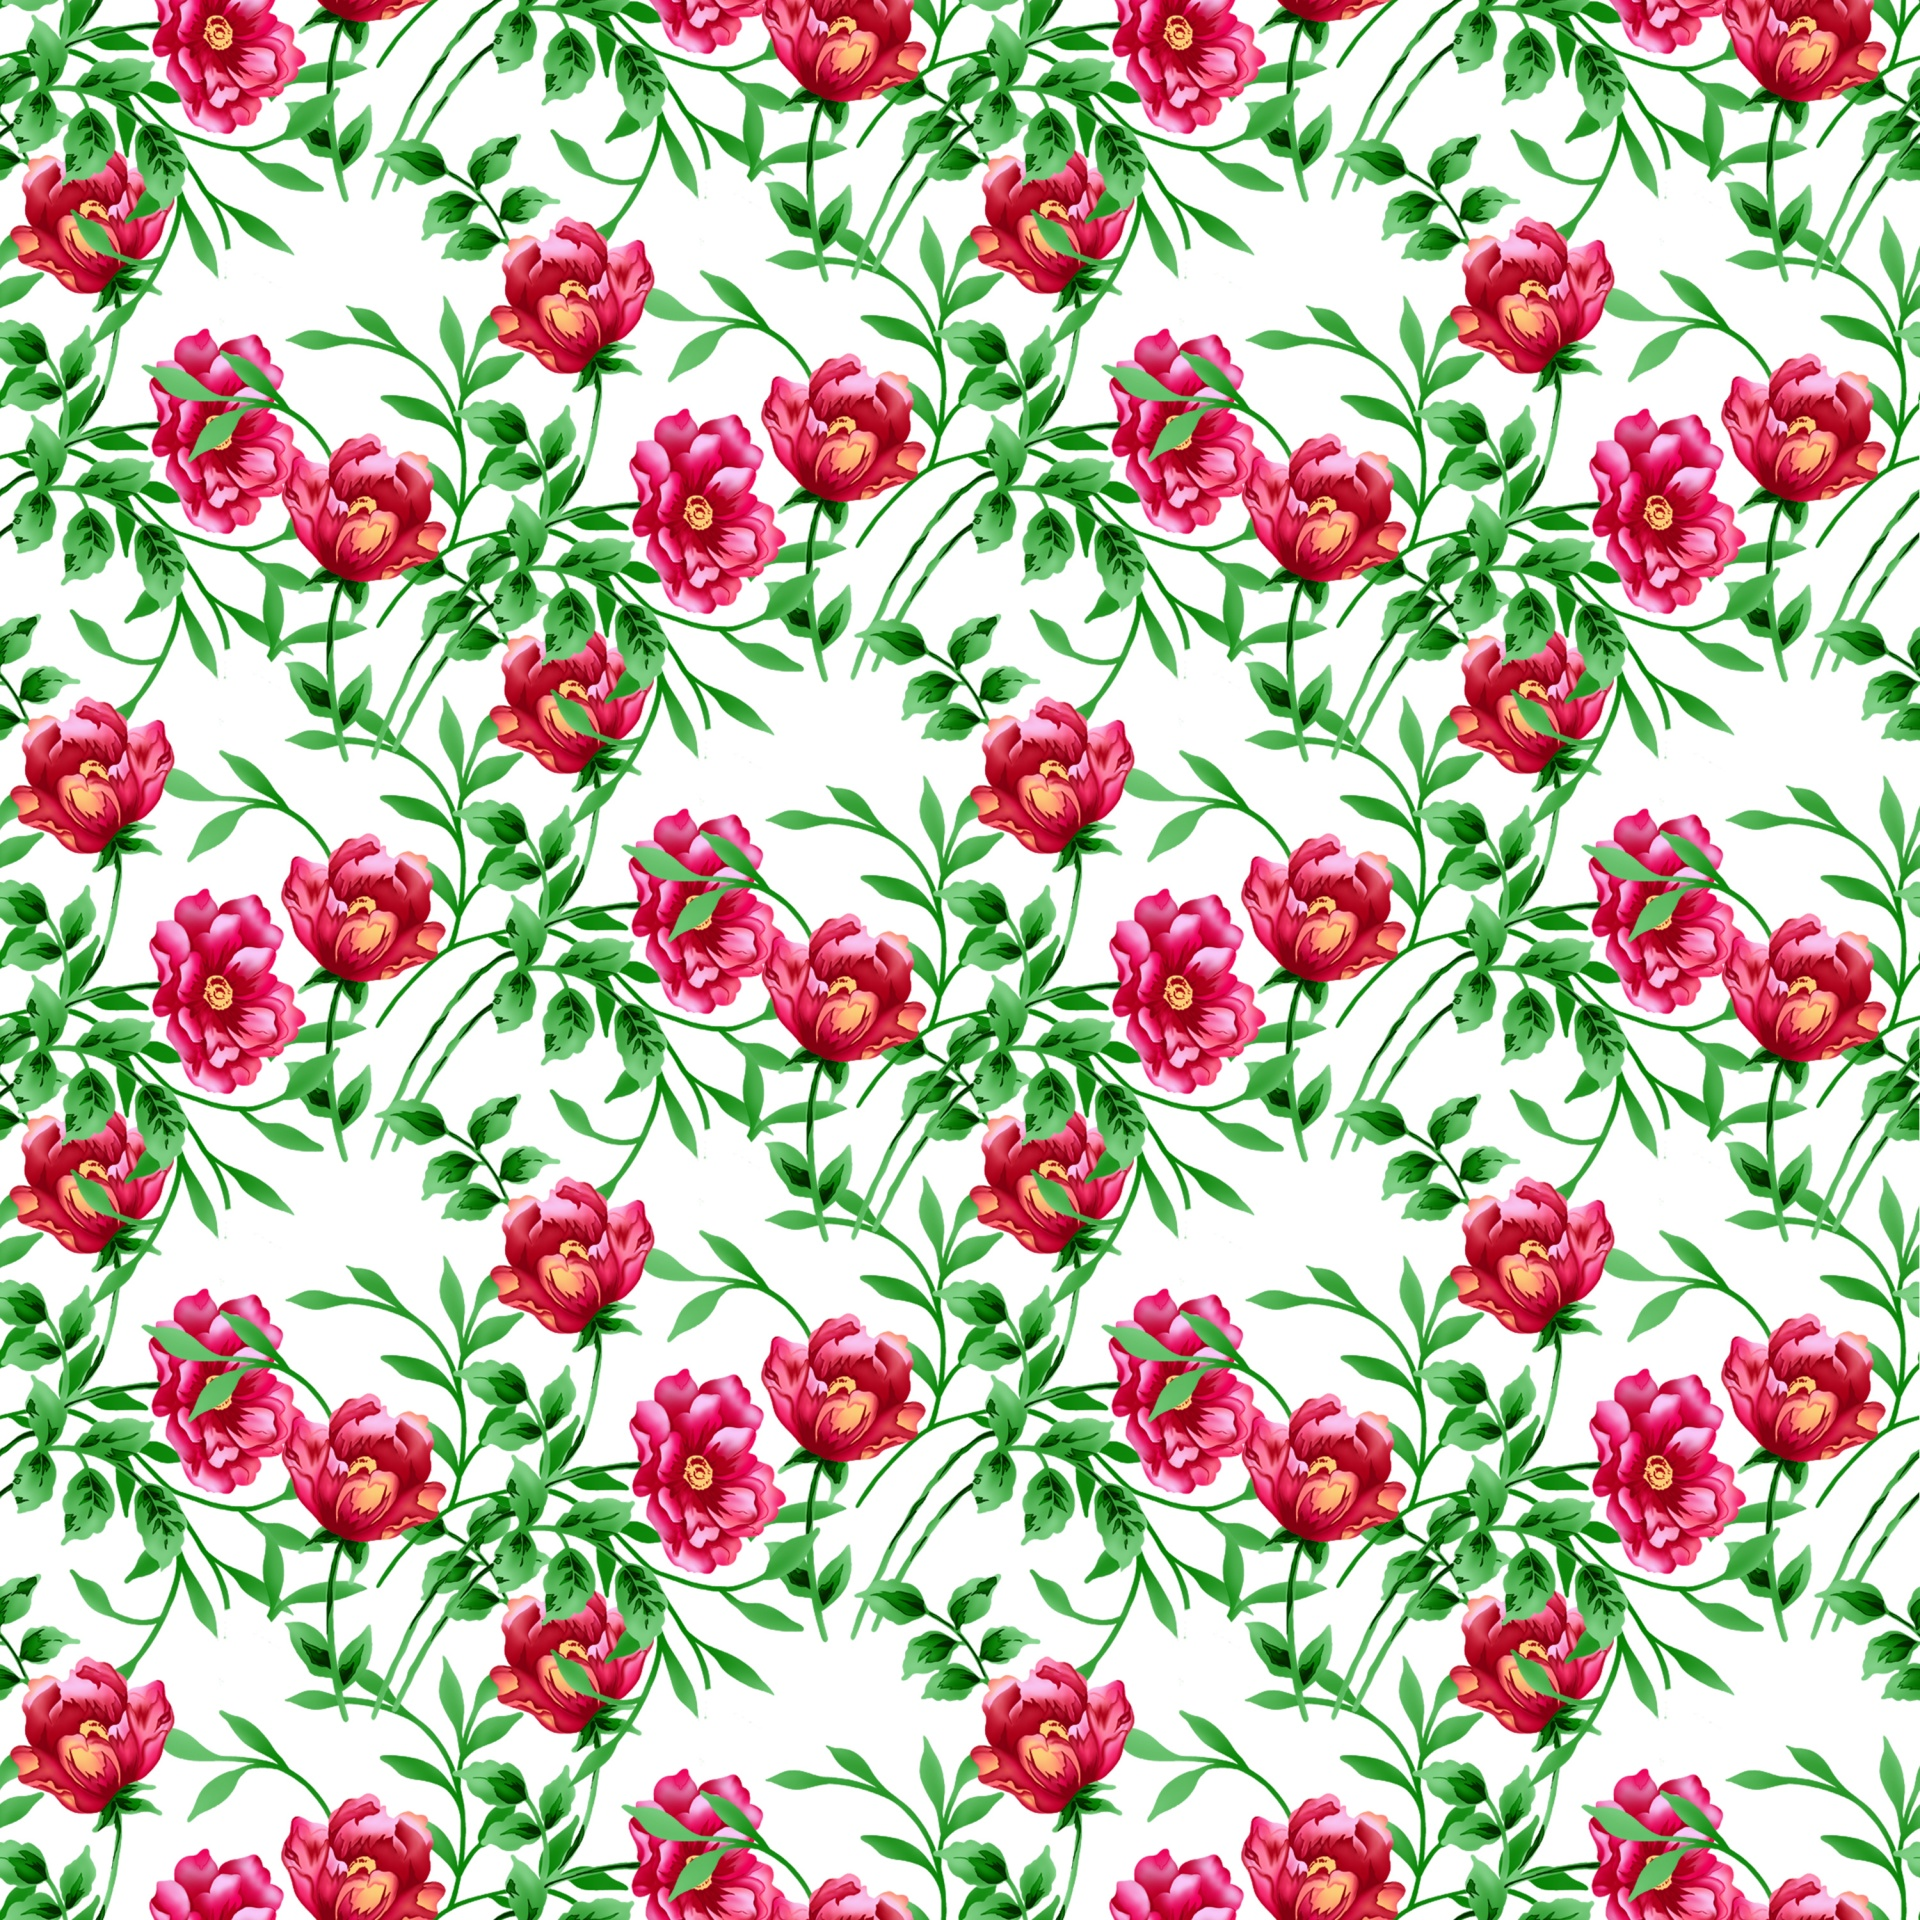 Floral Flowers Wallpaper Paper Background Free Image From